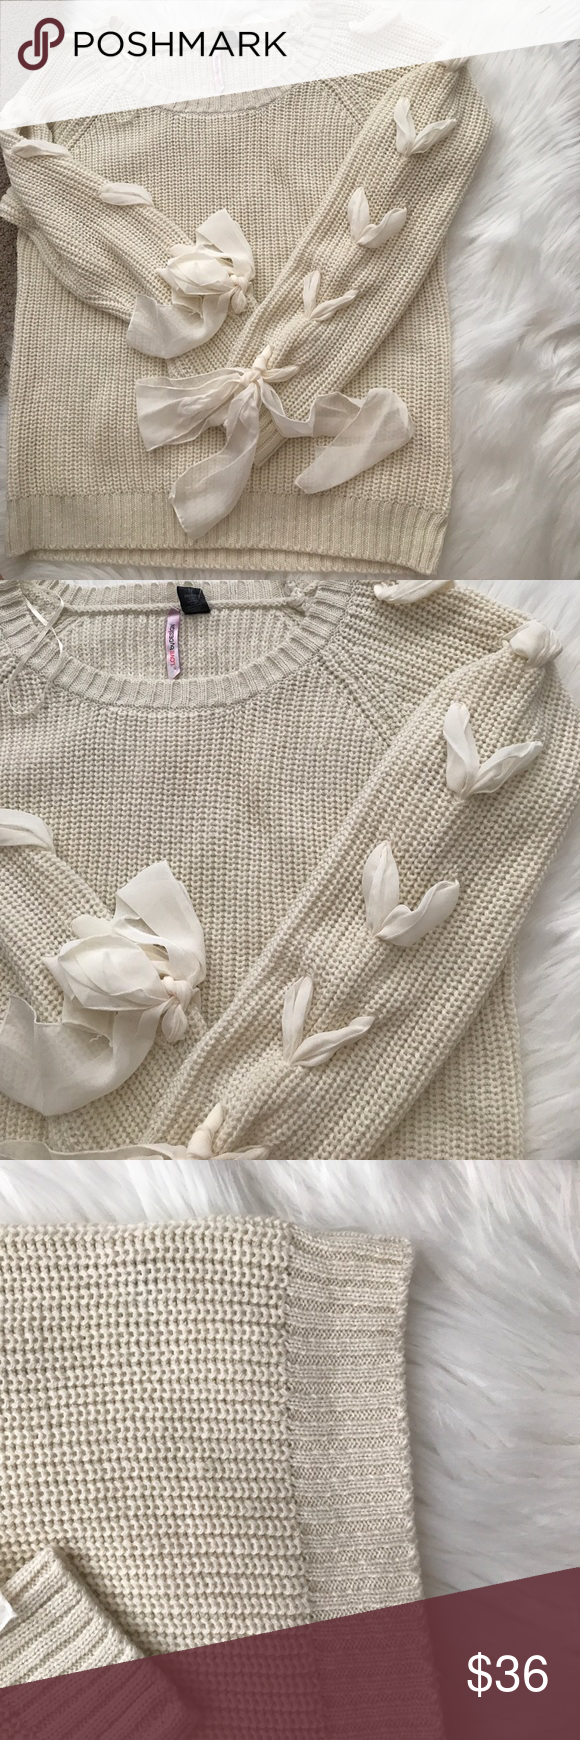 Gorgeous cream sweater size M This is very cute cream sweater soft ...